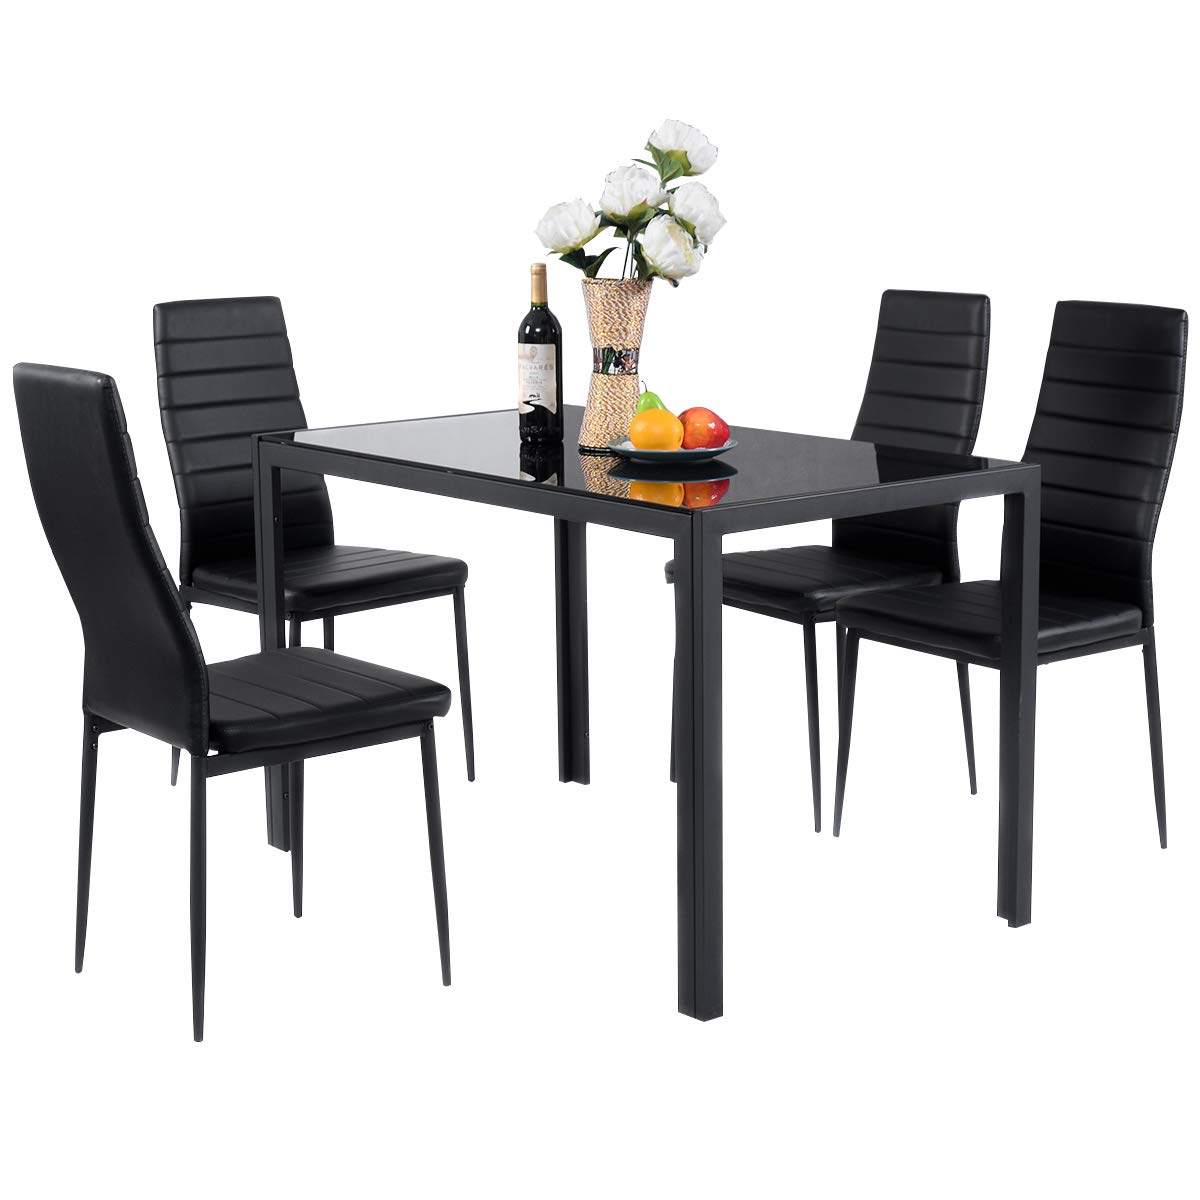 Giantex 5 Piece Kitchen Dining Table Set with Glass Table Top Leather Padded 4 Chairs and Metal Frame Table for Breakfast Dining Room Kitchen Furniture, Black by Giantex